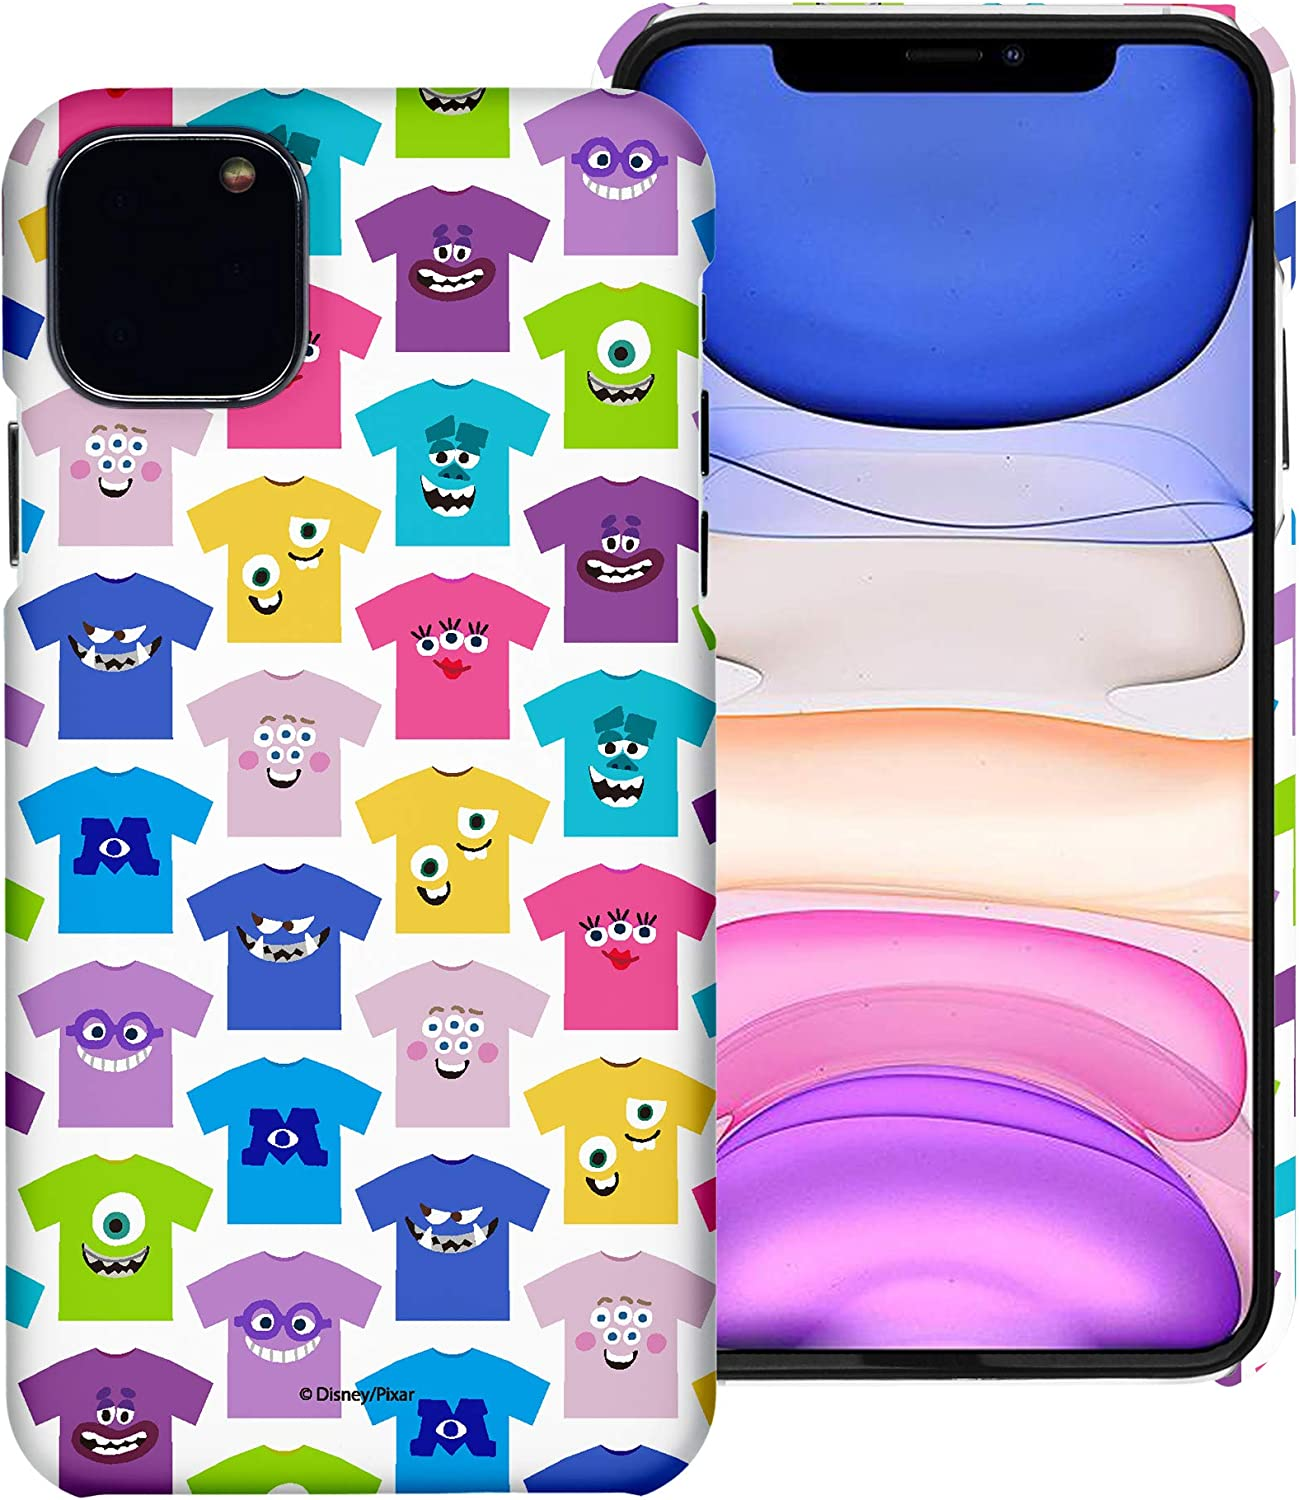 WiLLBee Compatible with iPhone 12 Pro Case/Compatible with iPhone 12 Case (6.1inch) Monsters University inc Thin Hard Matte Surface Cover - Pattern Shirts